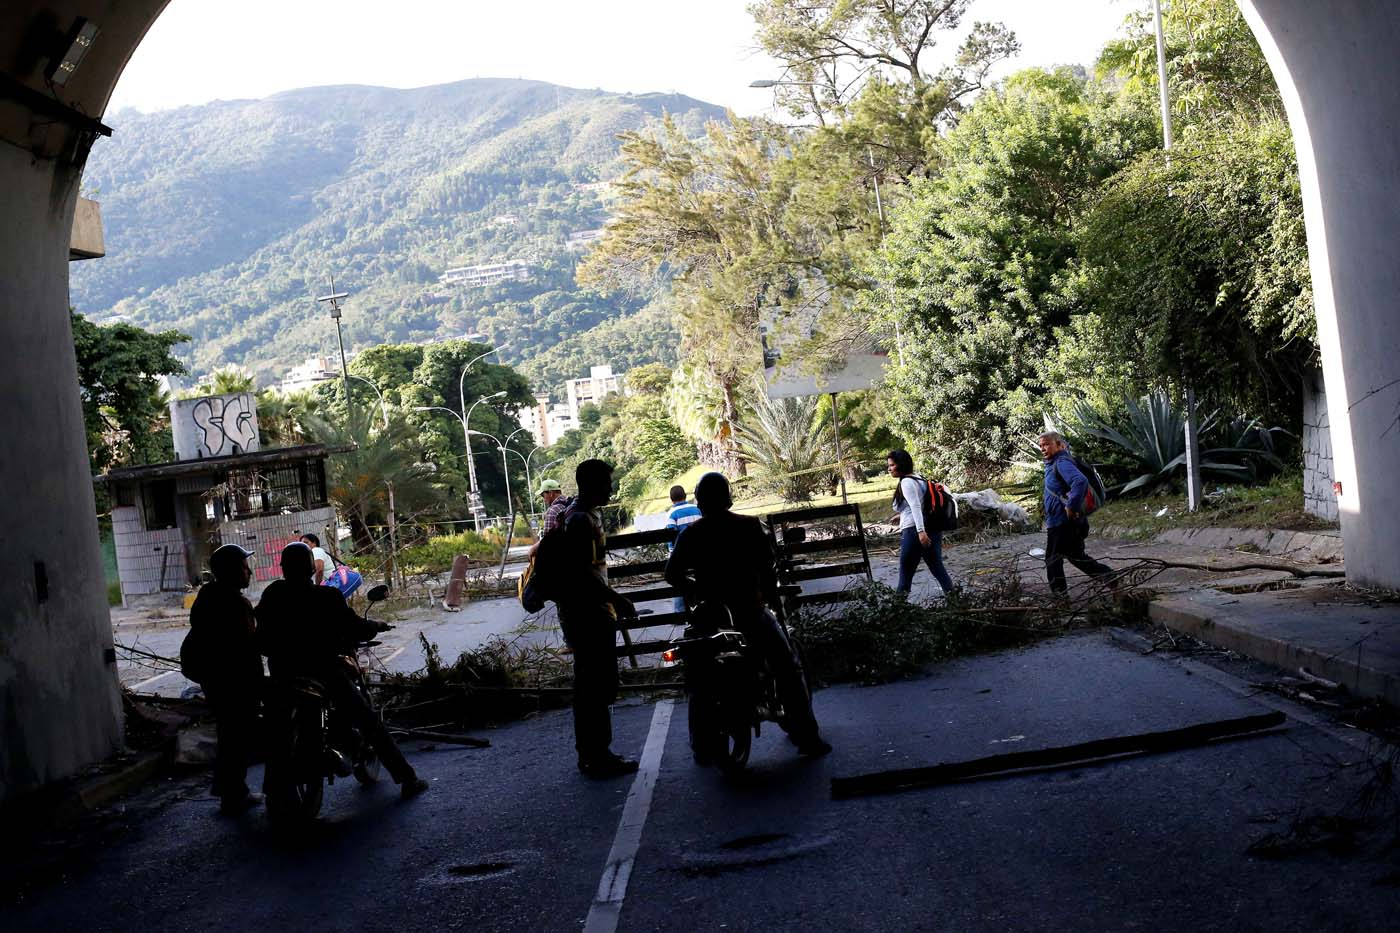 Motorcyclists stand at a blocked road during a strike called to protest against Venezuelan President Nicolas Maduro's government in Caracas, Venezuela July 26, 2017. REUTERS/Andres Martinez Casares